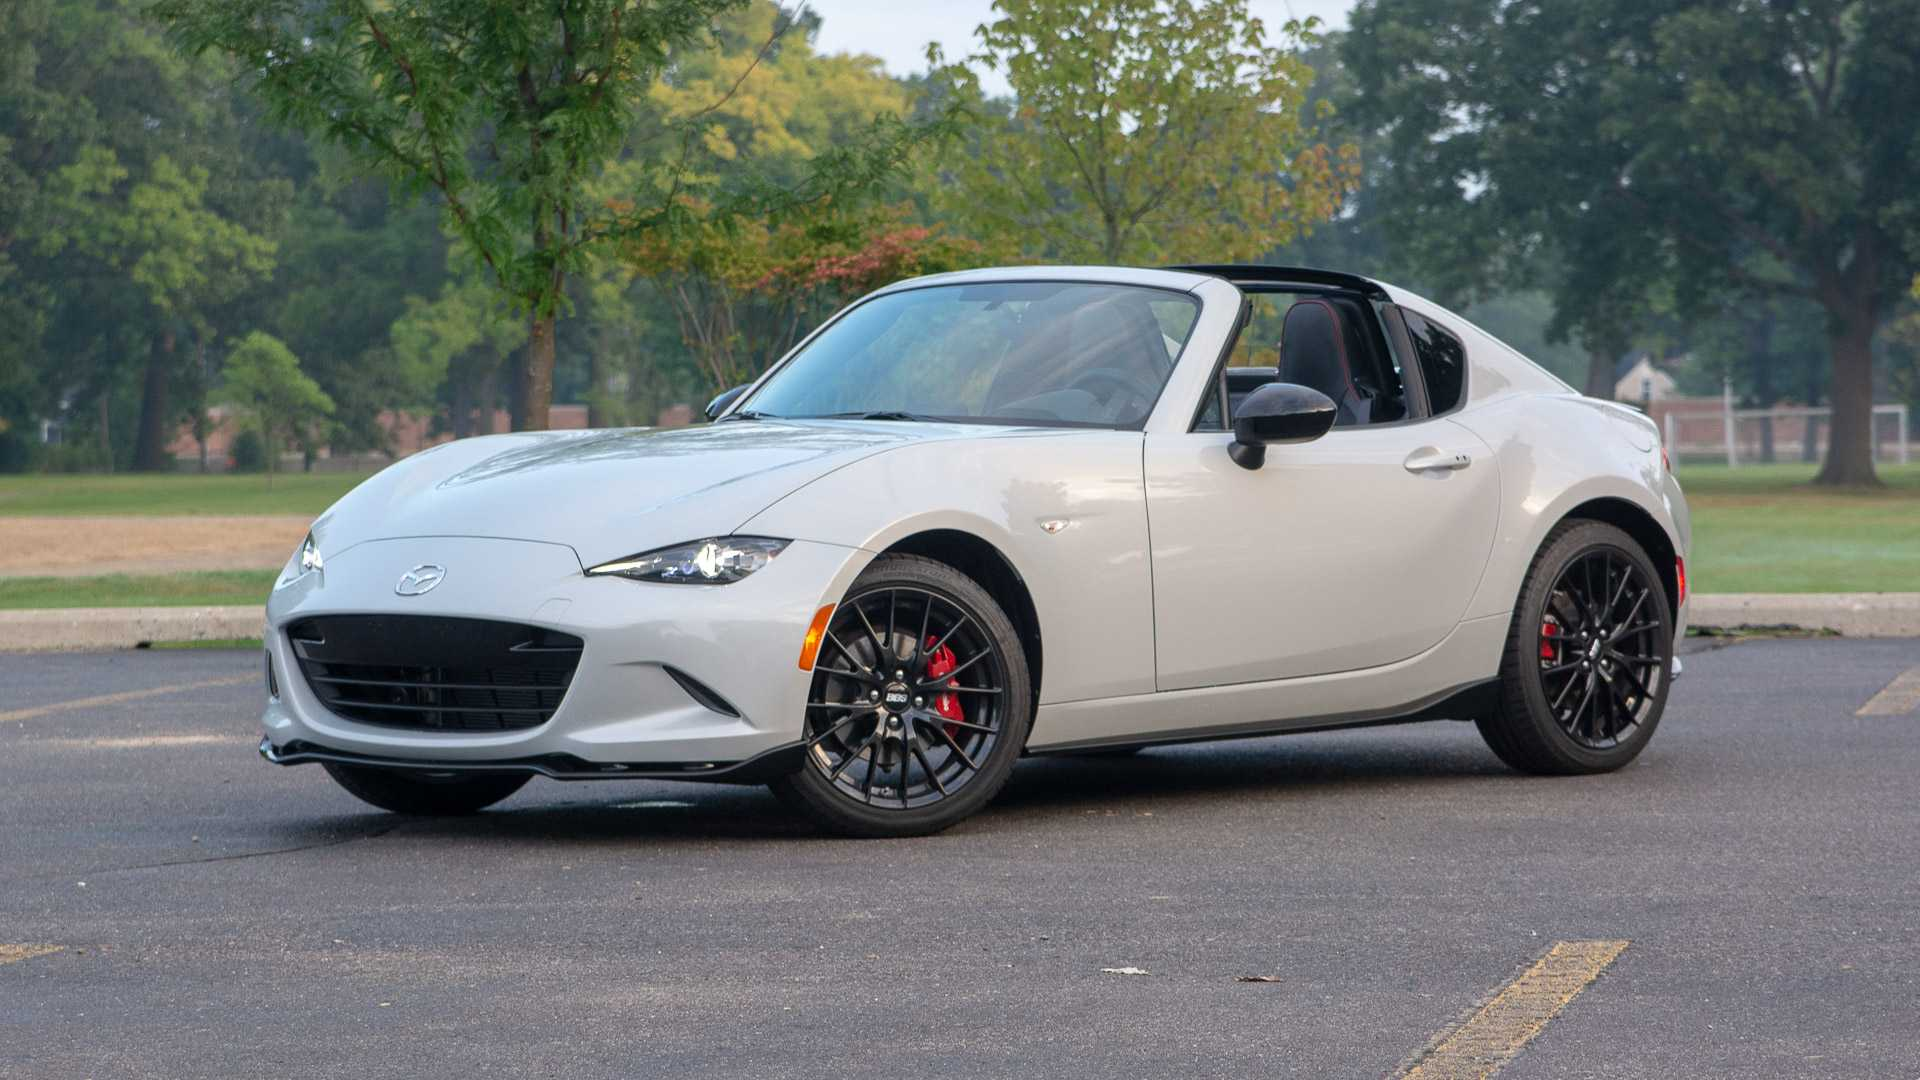 20 New 2019 Mazda MX 5 Miata Configurations